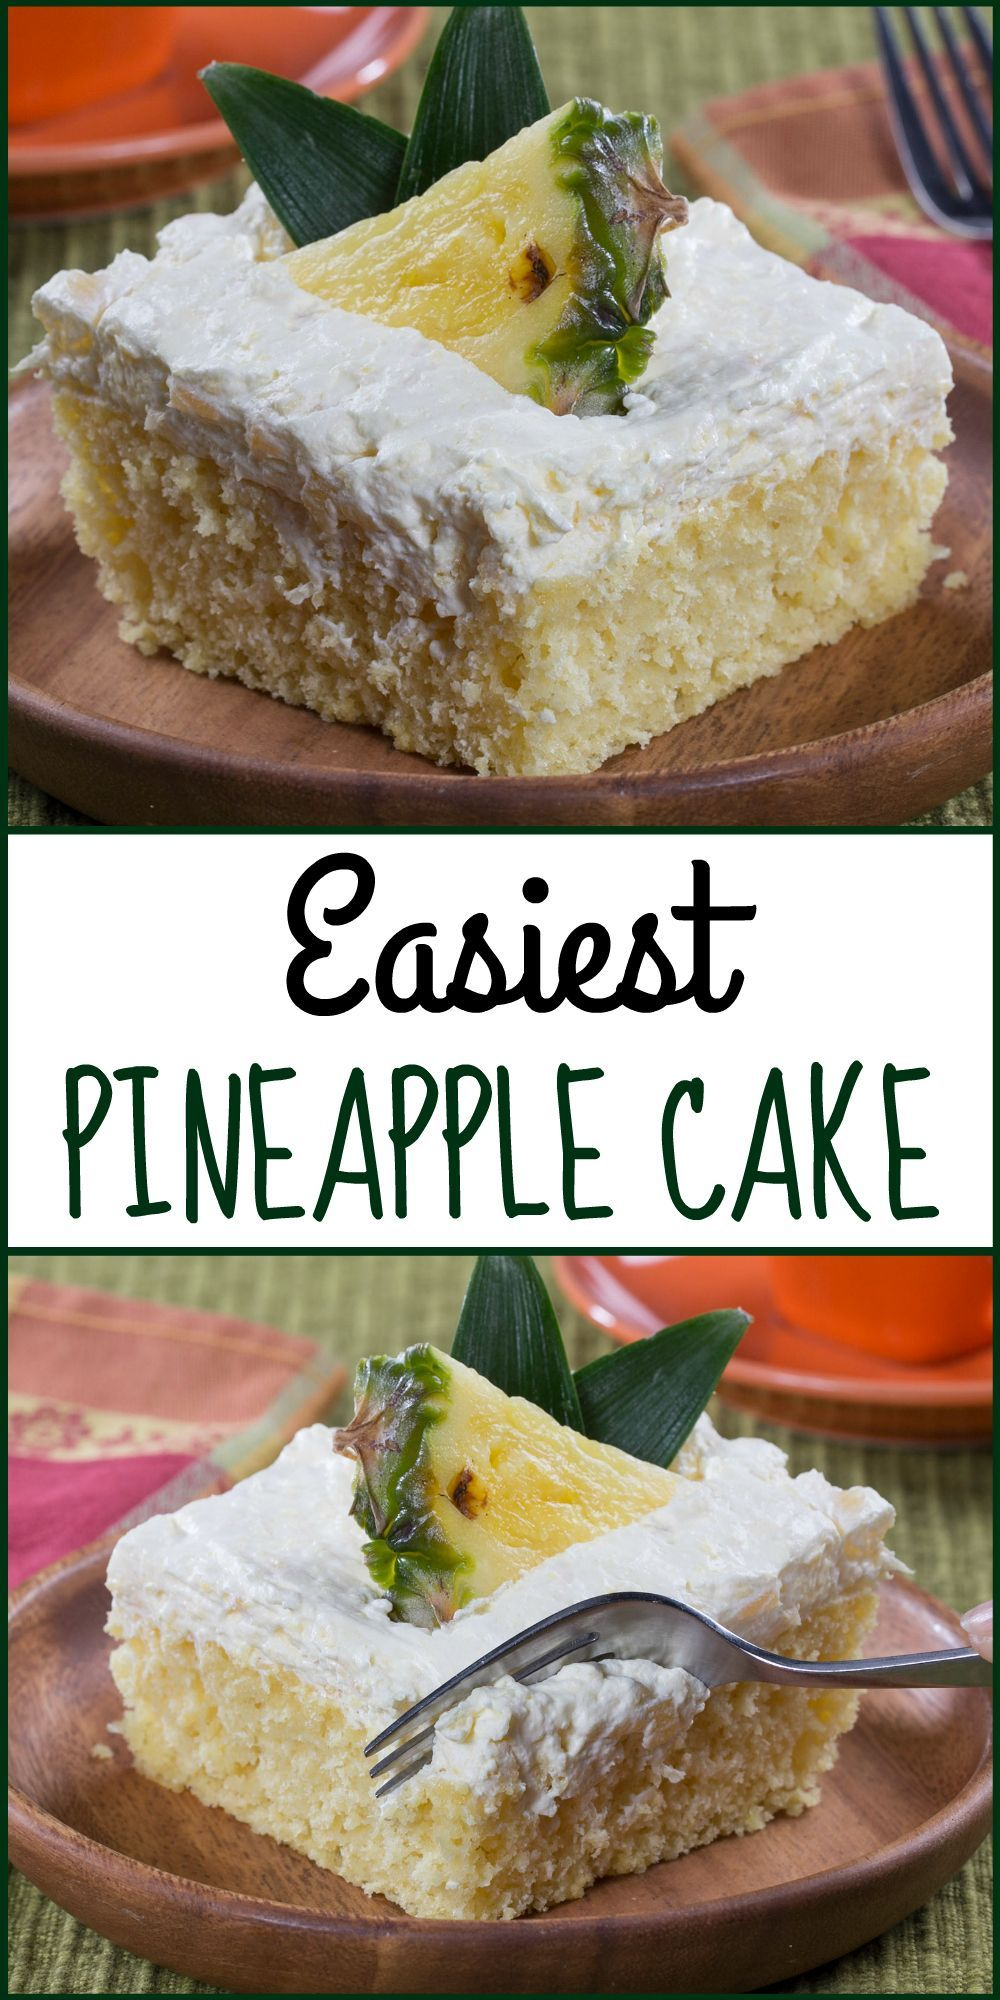 Easiest Pineapple Cake Recipe Easy pineapple cake Pineapple